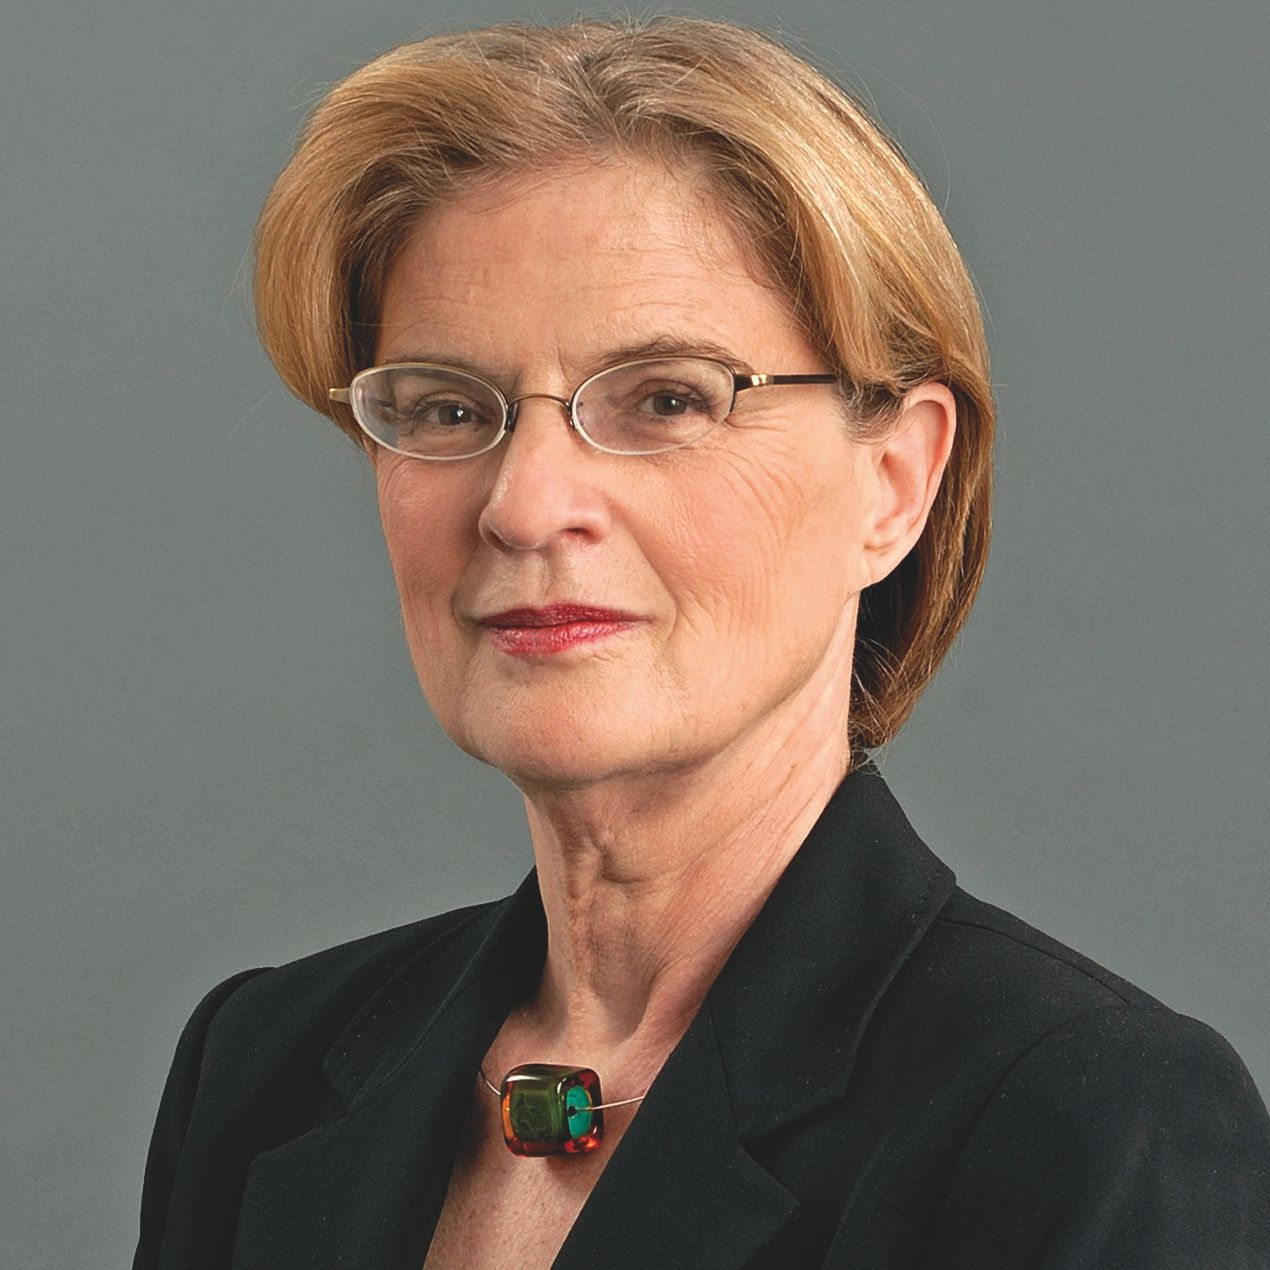 Susan Wachter, co-director of Penn IUR and professor of real estate and finance at the Wharton School